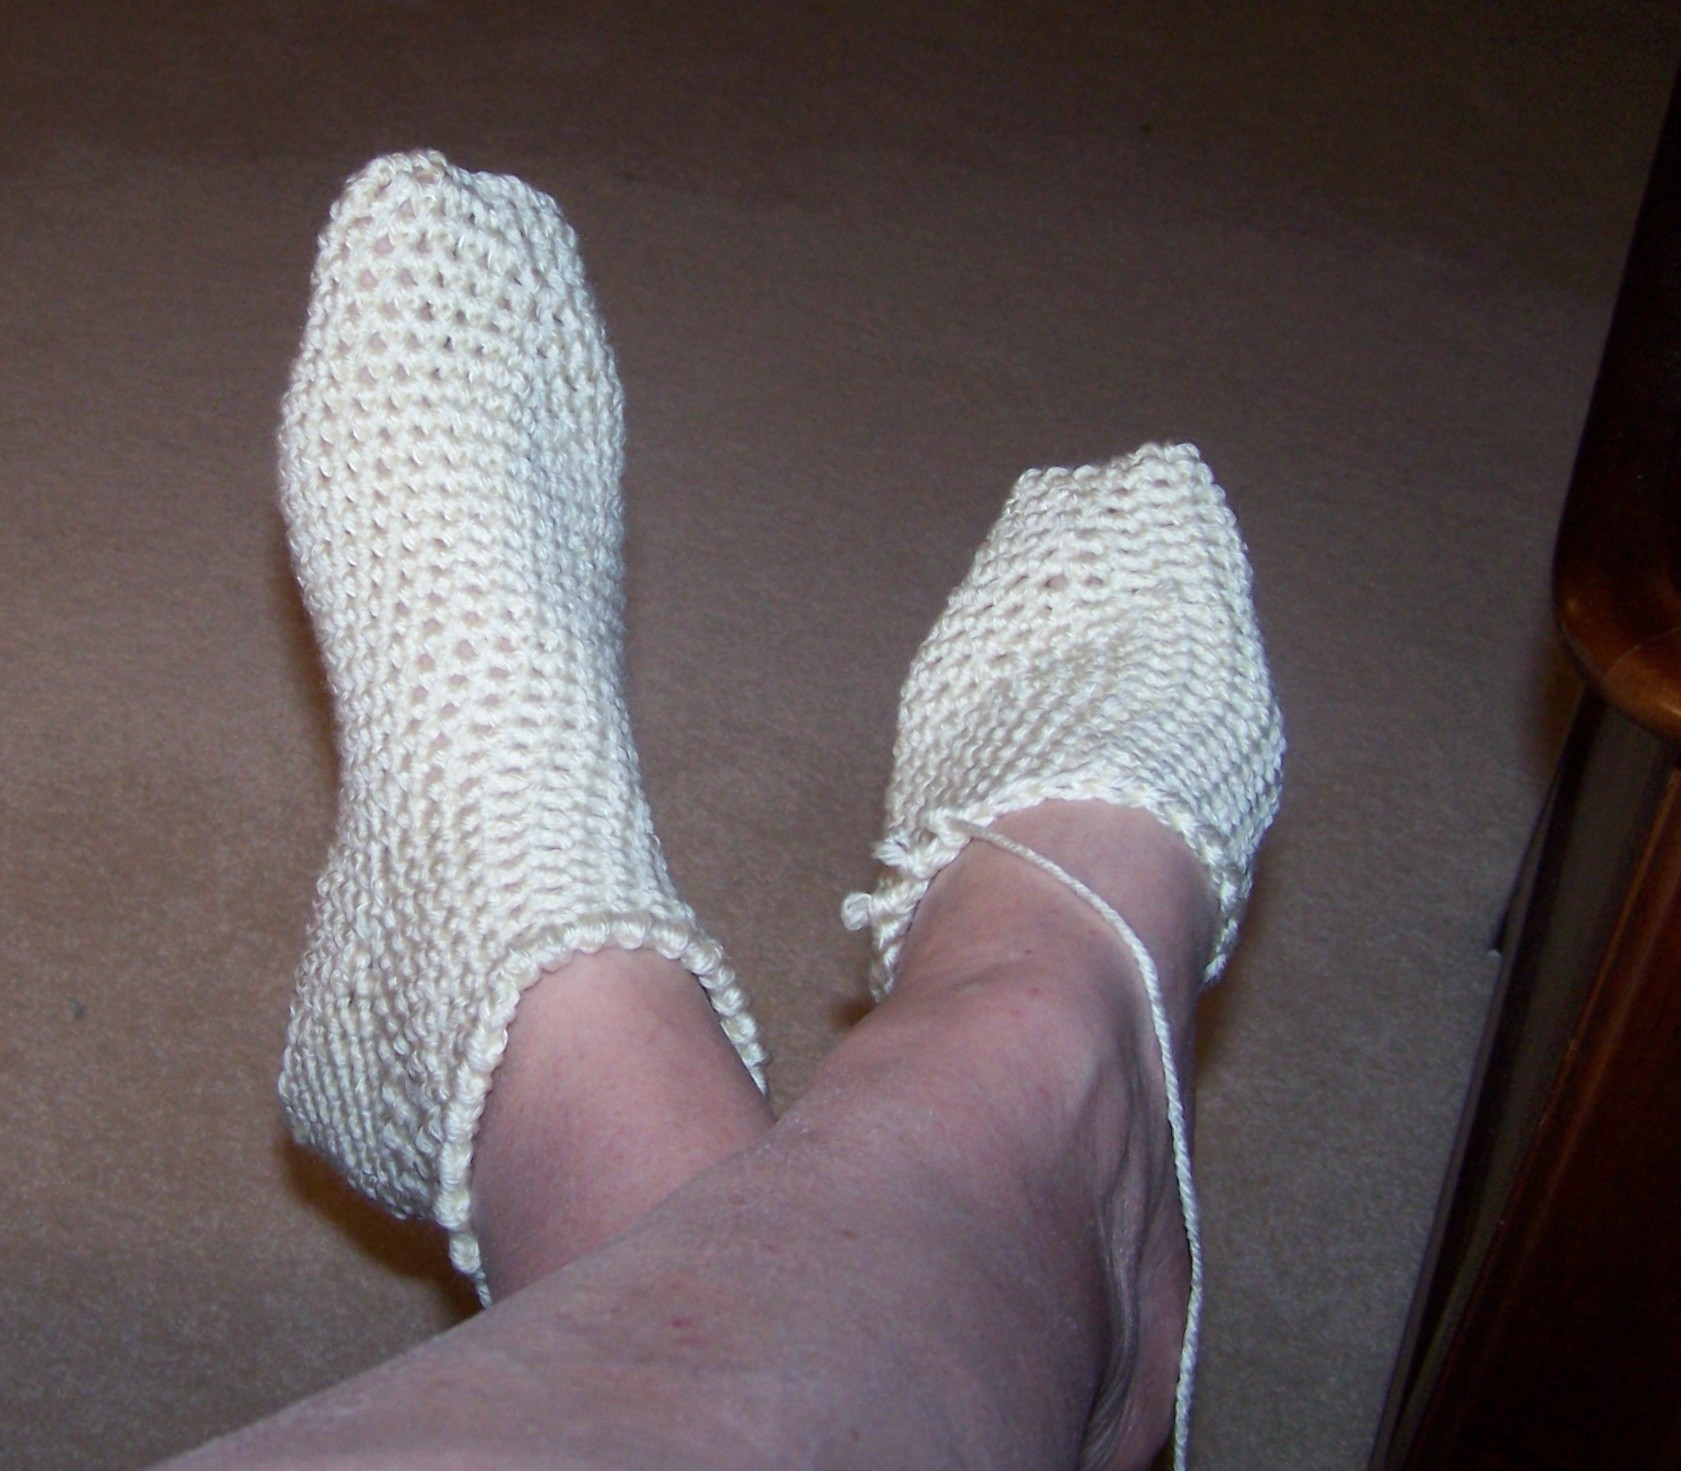 Crocheting Socks